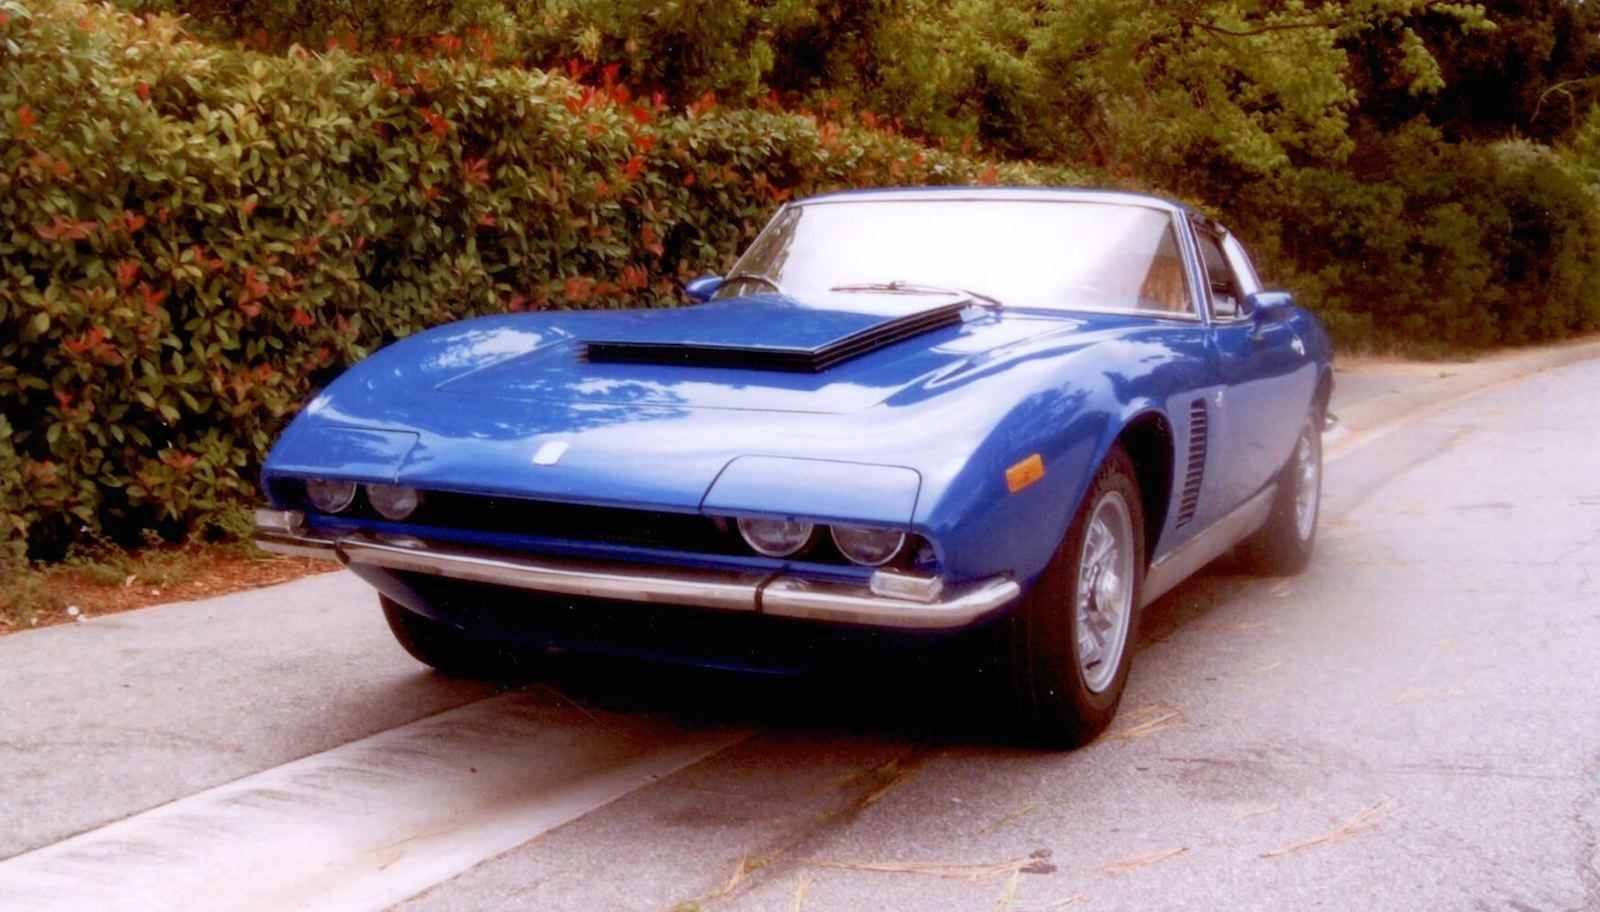 1974 Iso Grifo For Sale - The Last Grifo Made By The Iso Factory